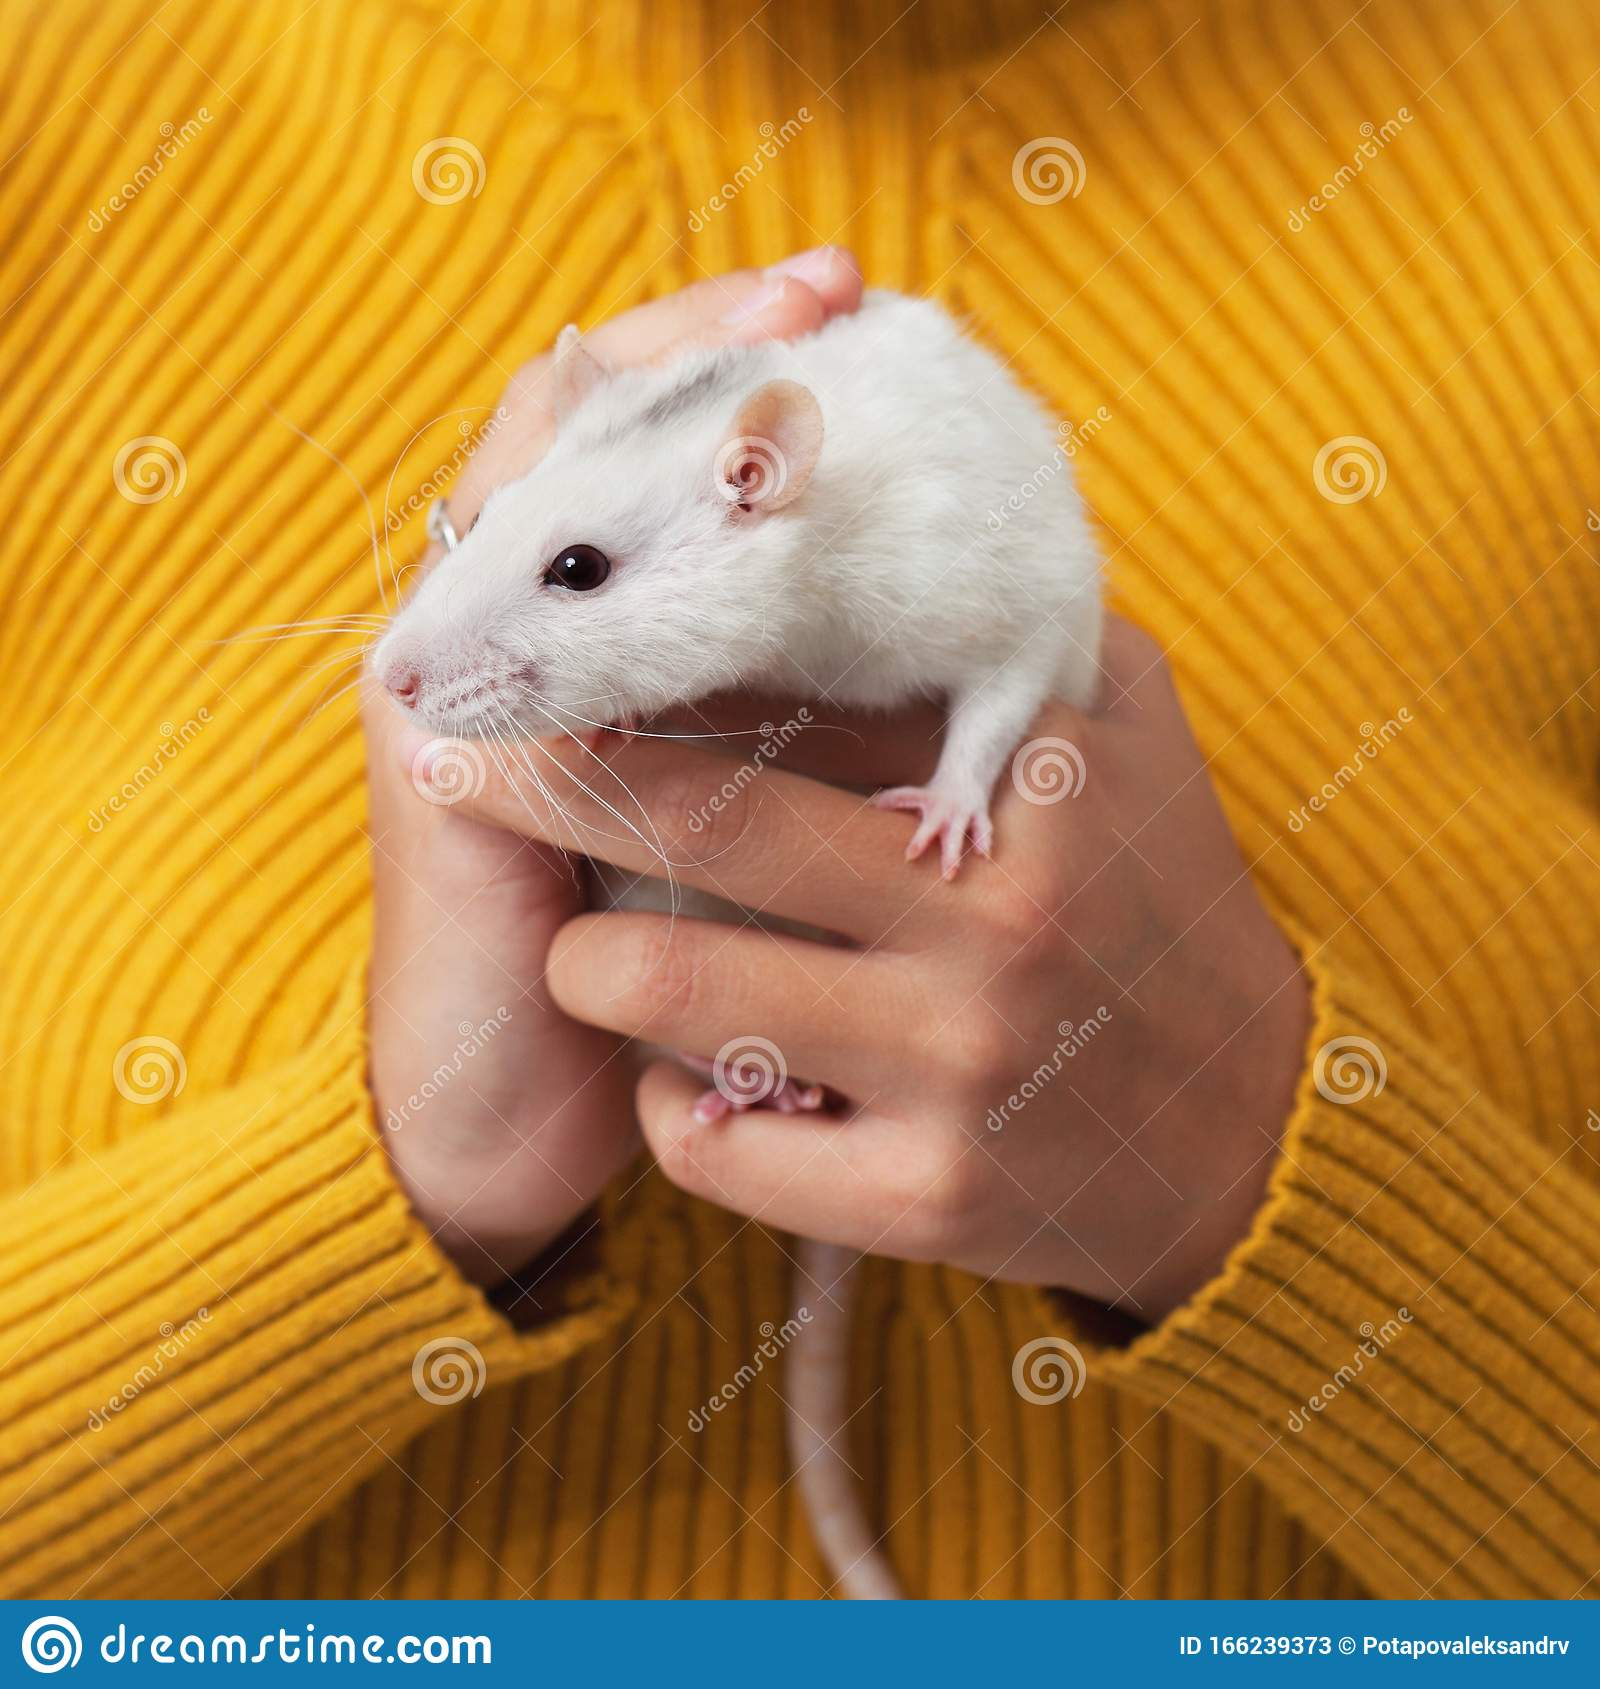 White rat in the arms stock image. Image of rats, chinese